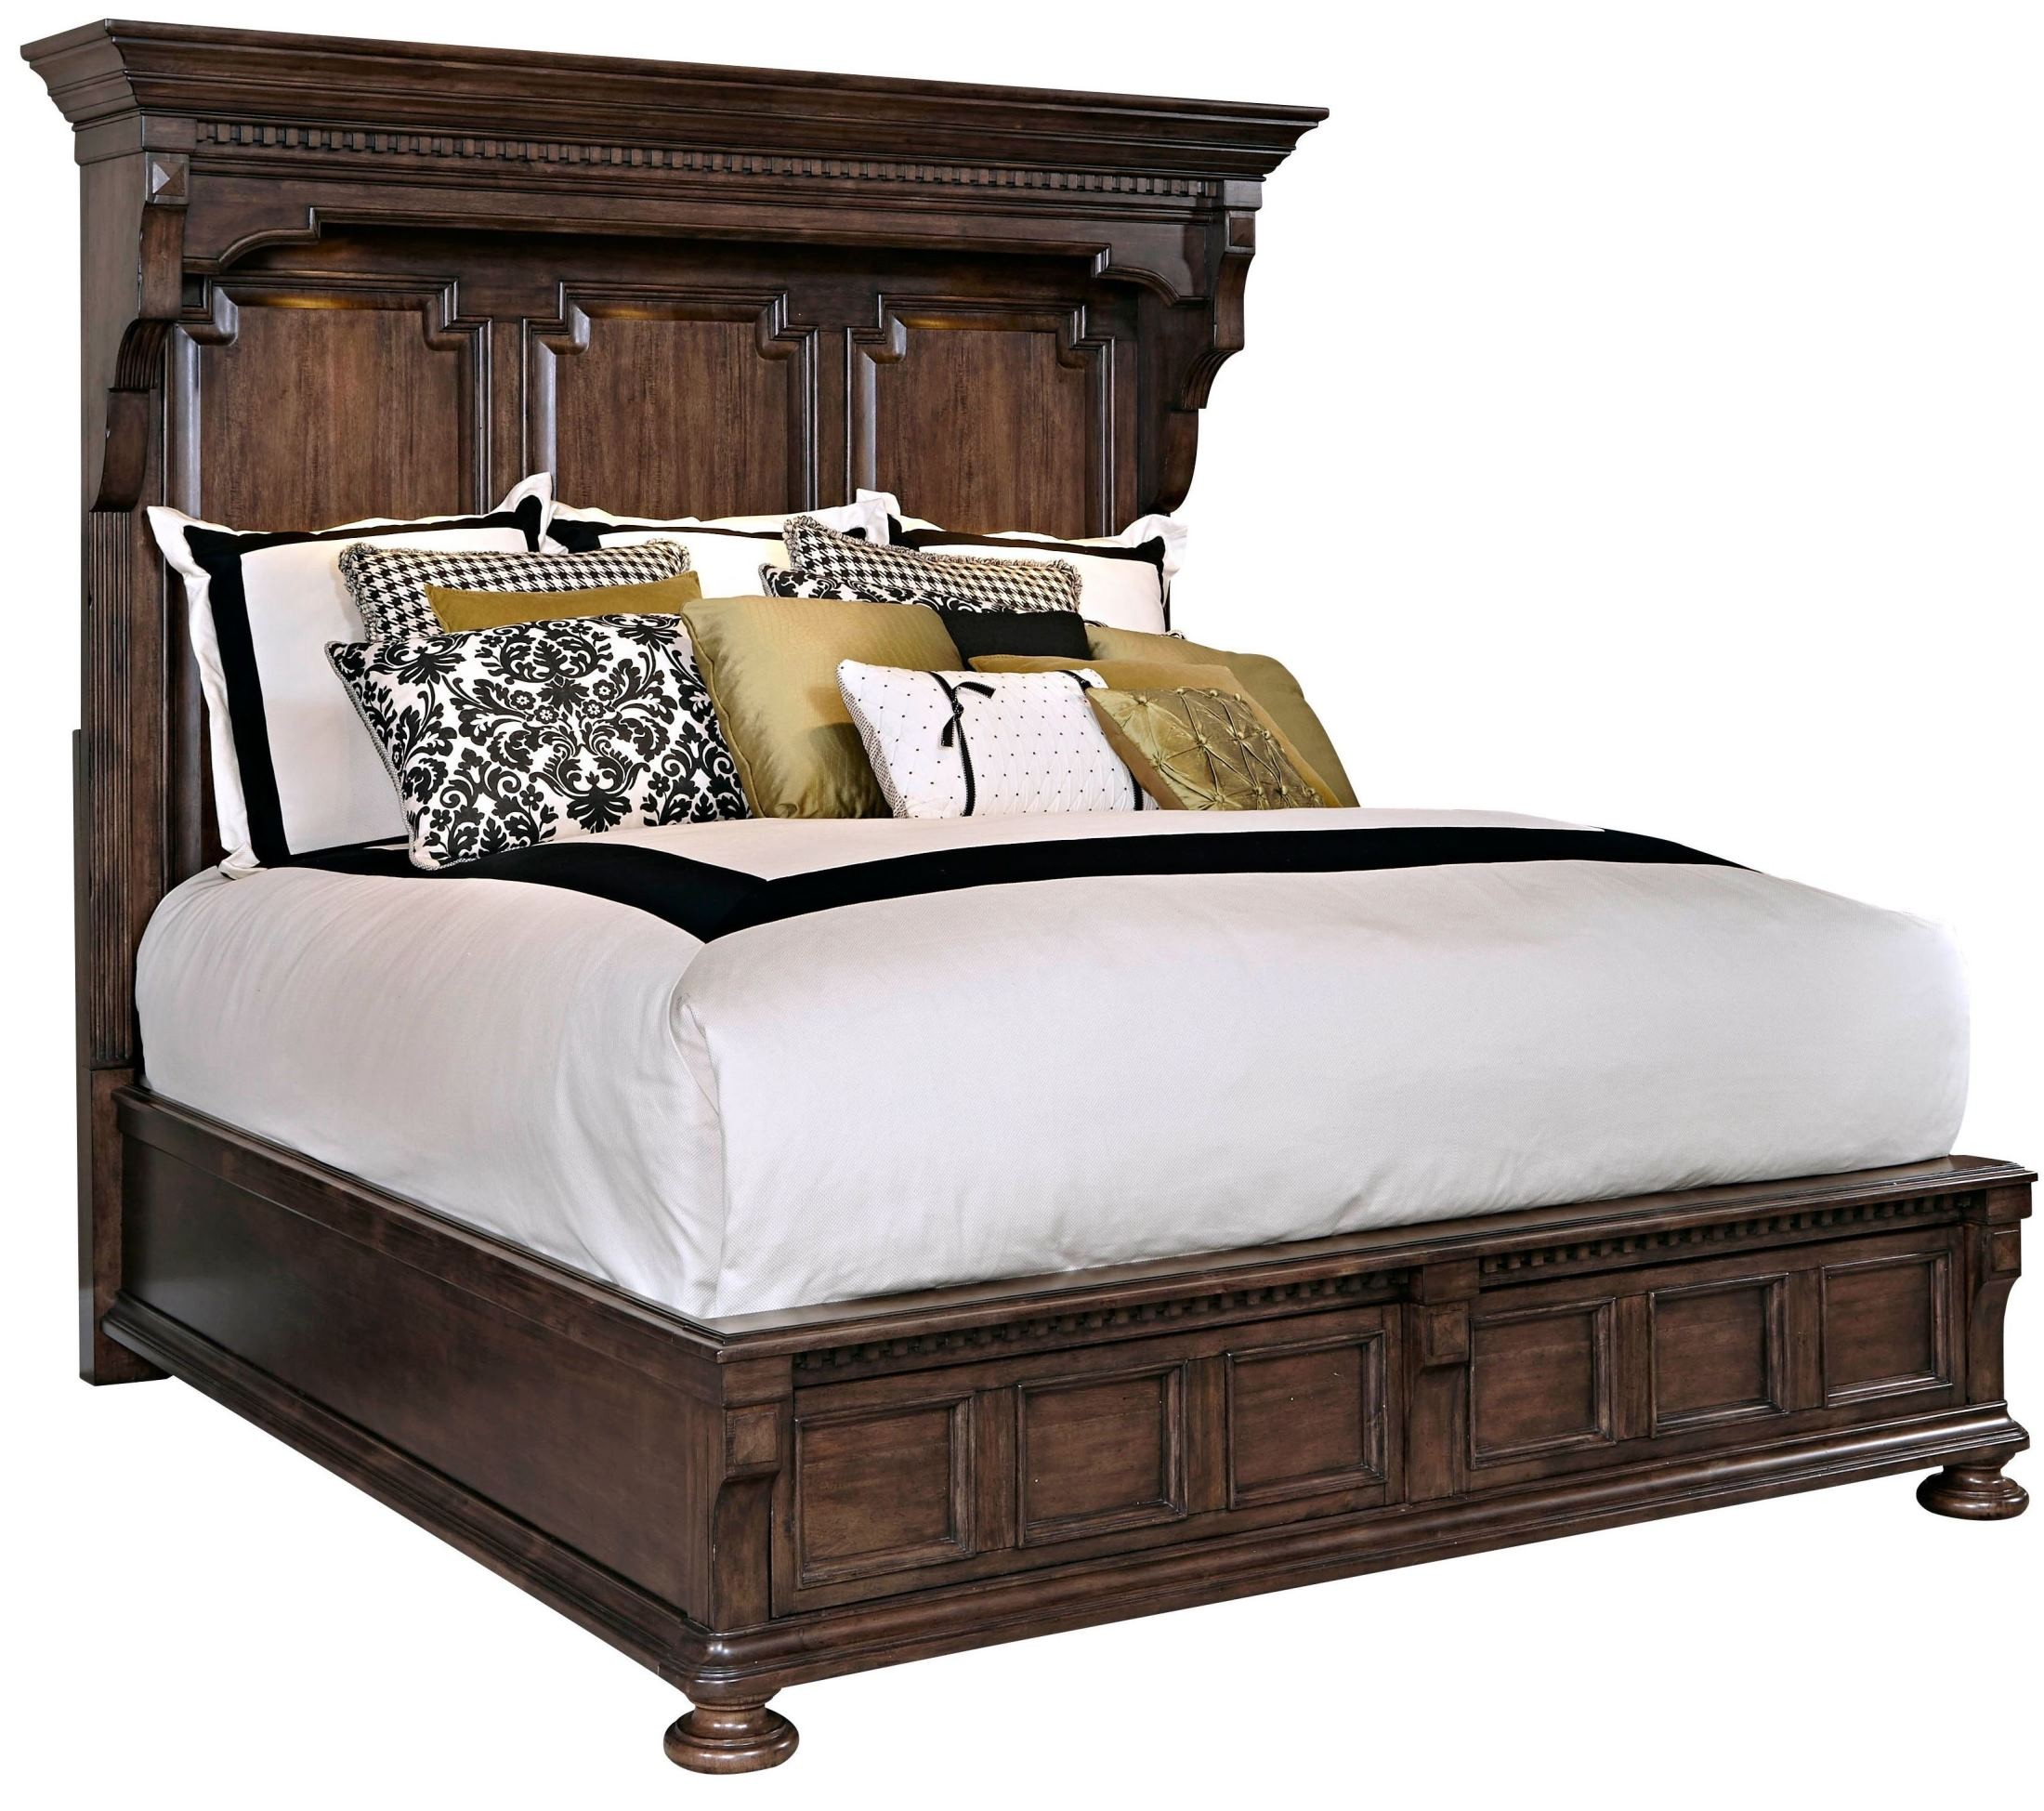 Lyla Queen Mansion Bed, 4912-260-265-460, Broyhill